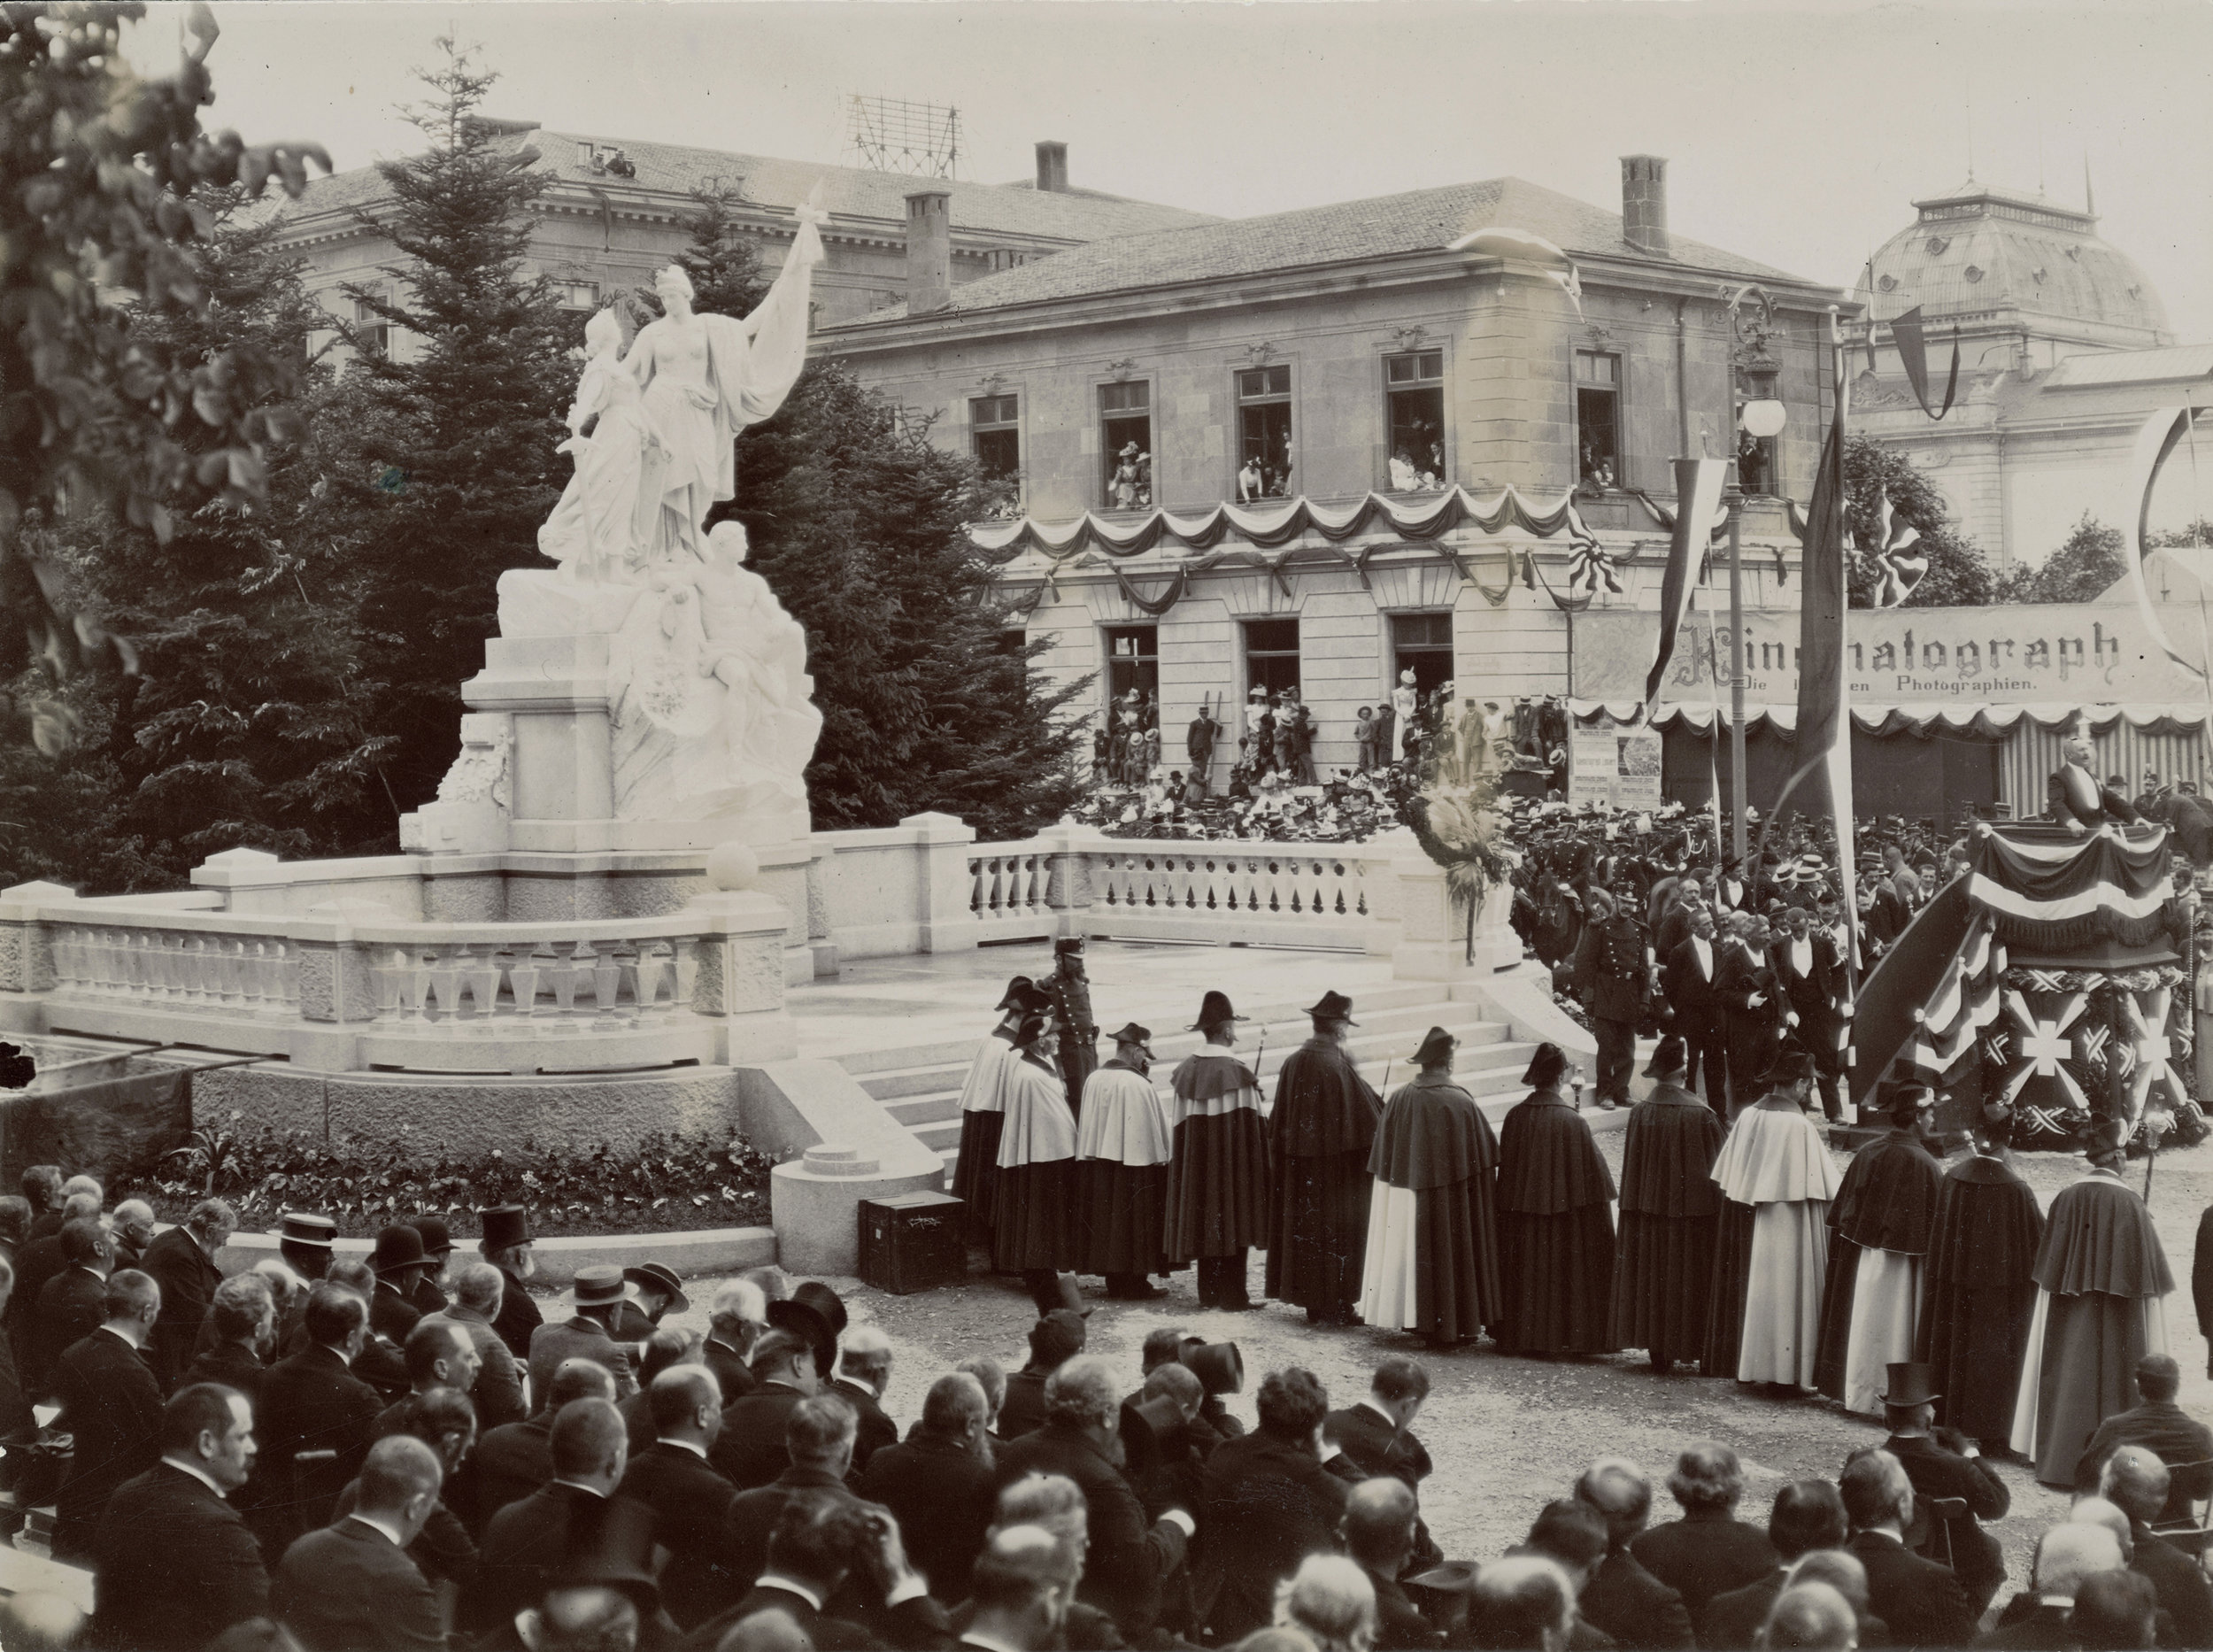 Inauguration du monument de la République à Neuchâtel, 1898, photo de Victor Attinger